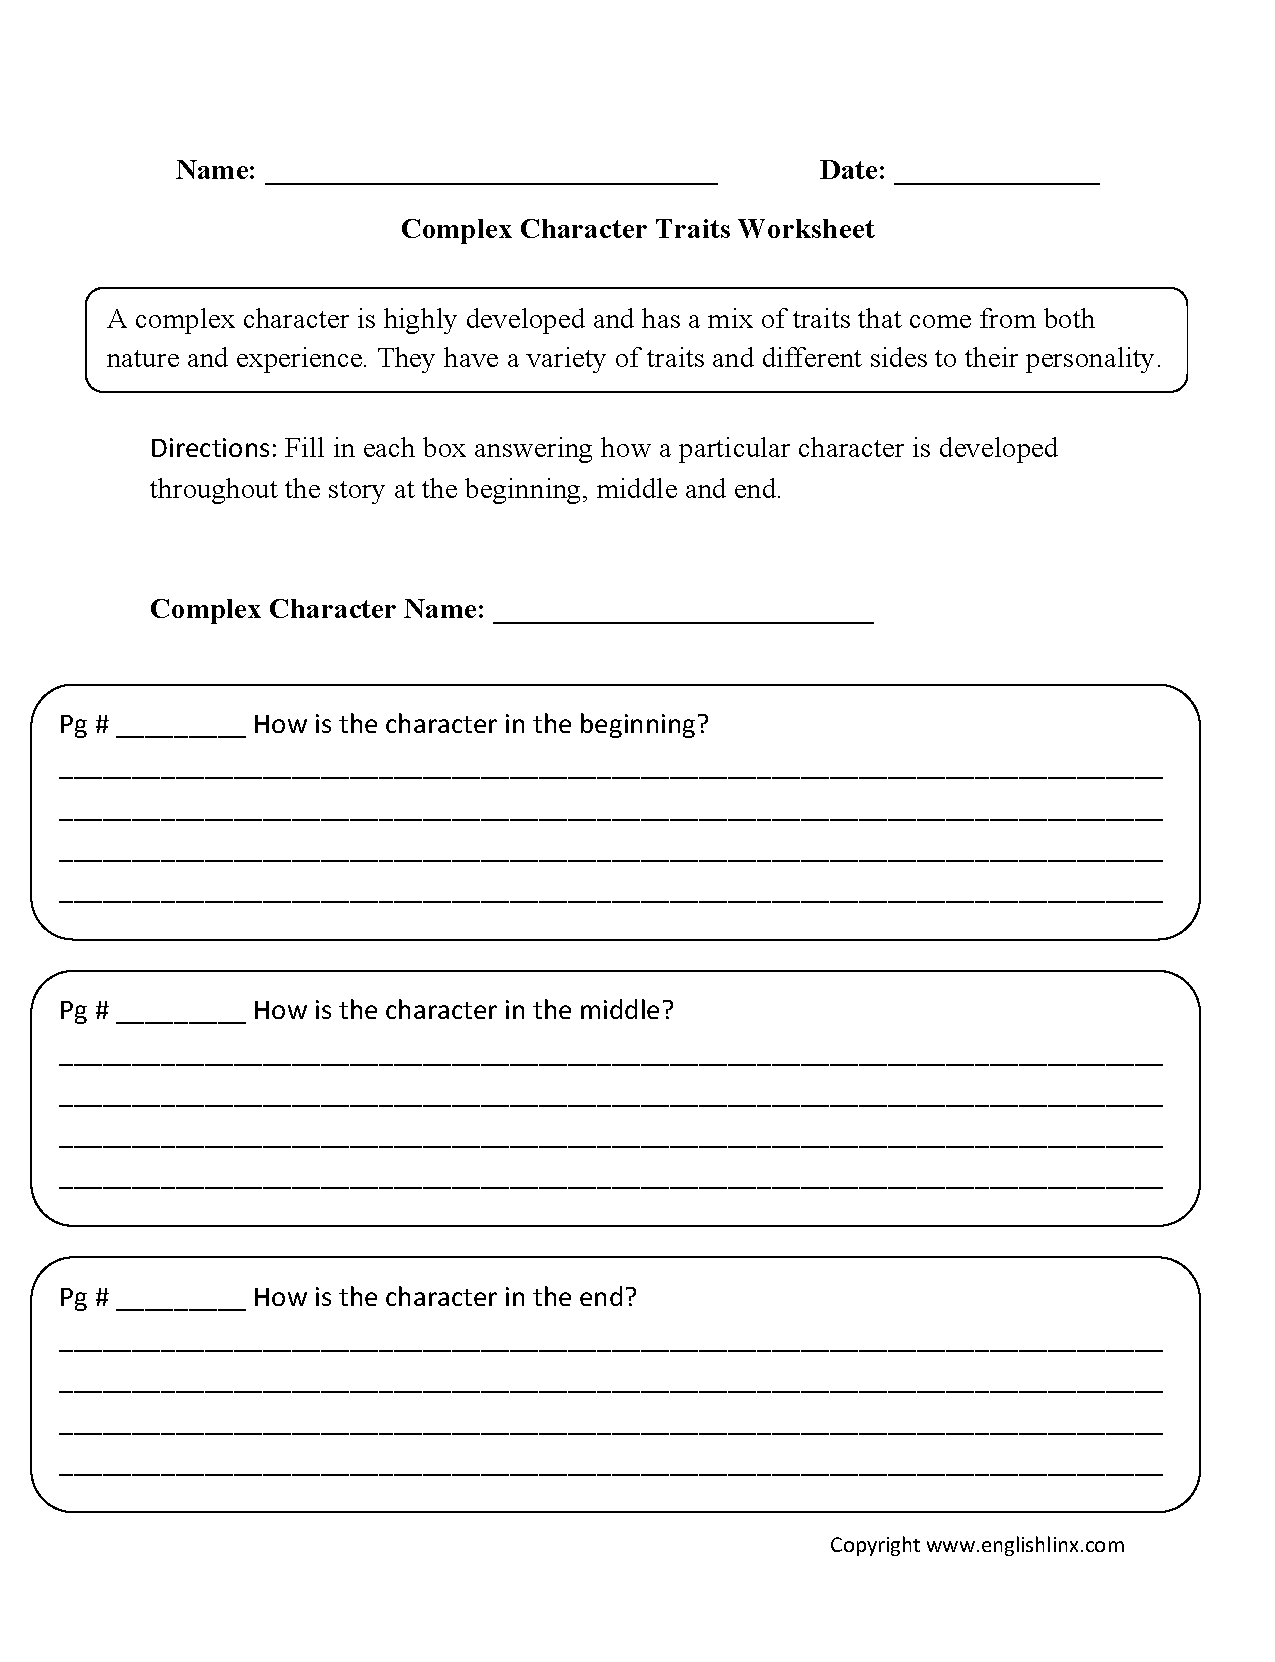 Worksheets Character Traits Worksheets reading worksheets character traits complex worksheets